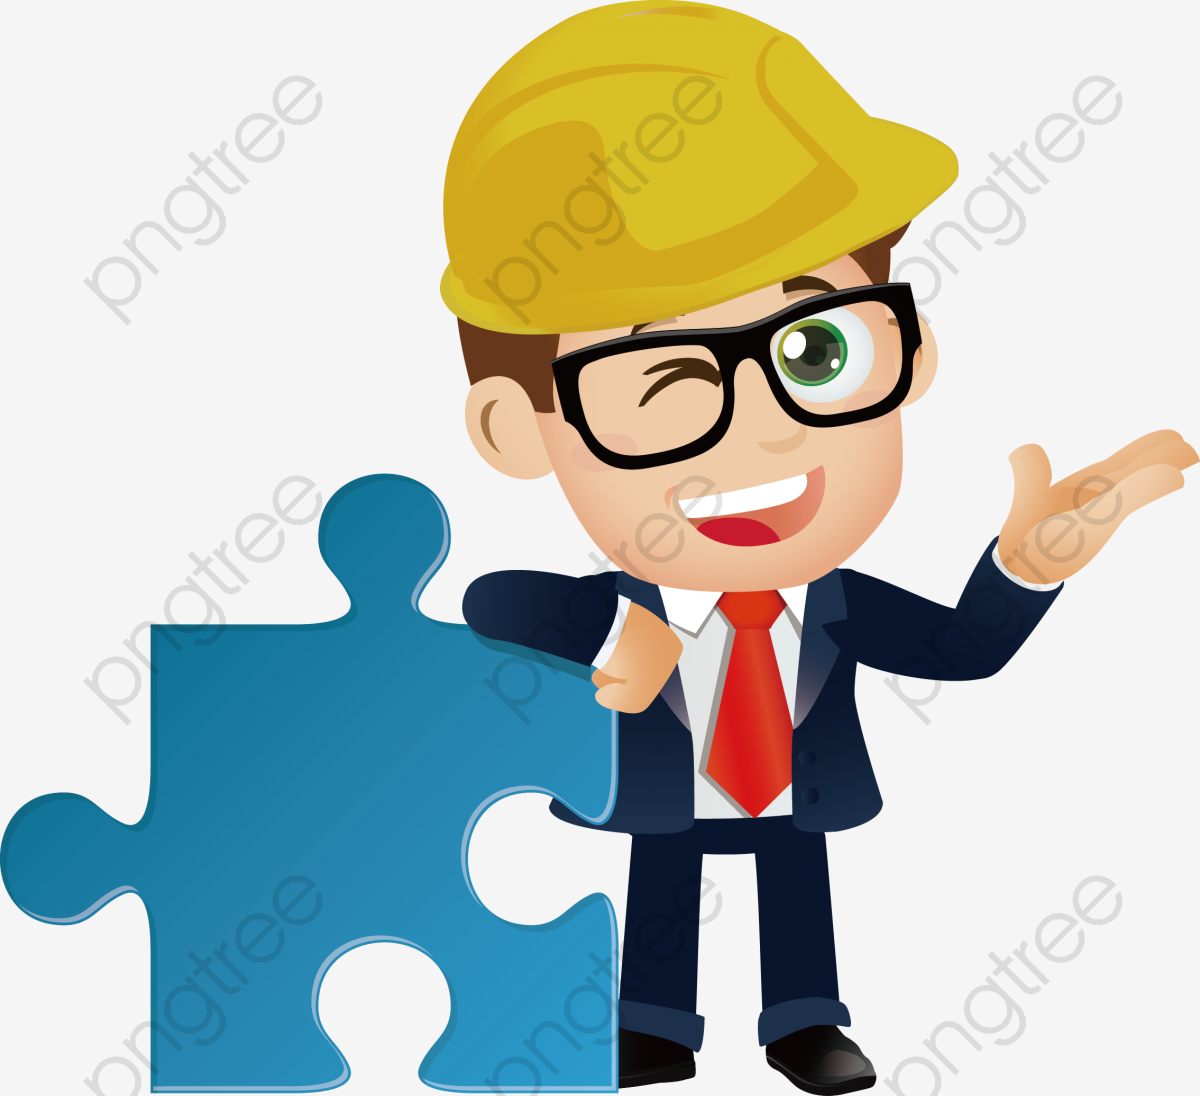 Engineer clipart safety engineer.